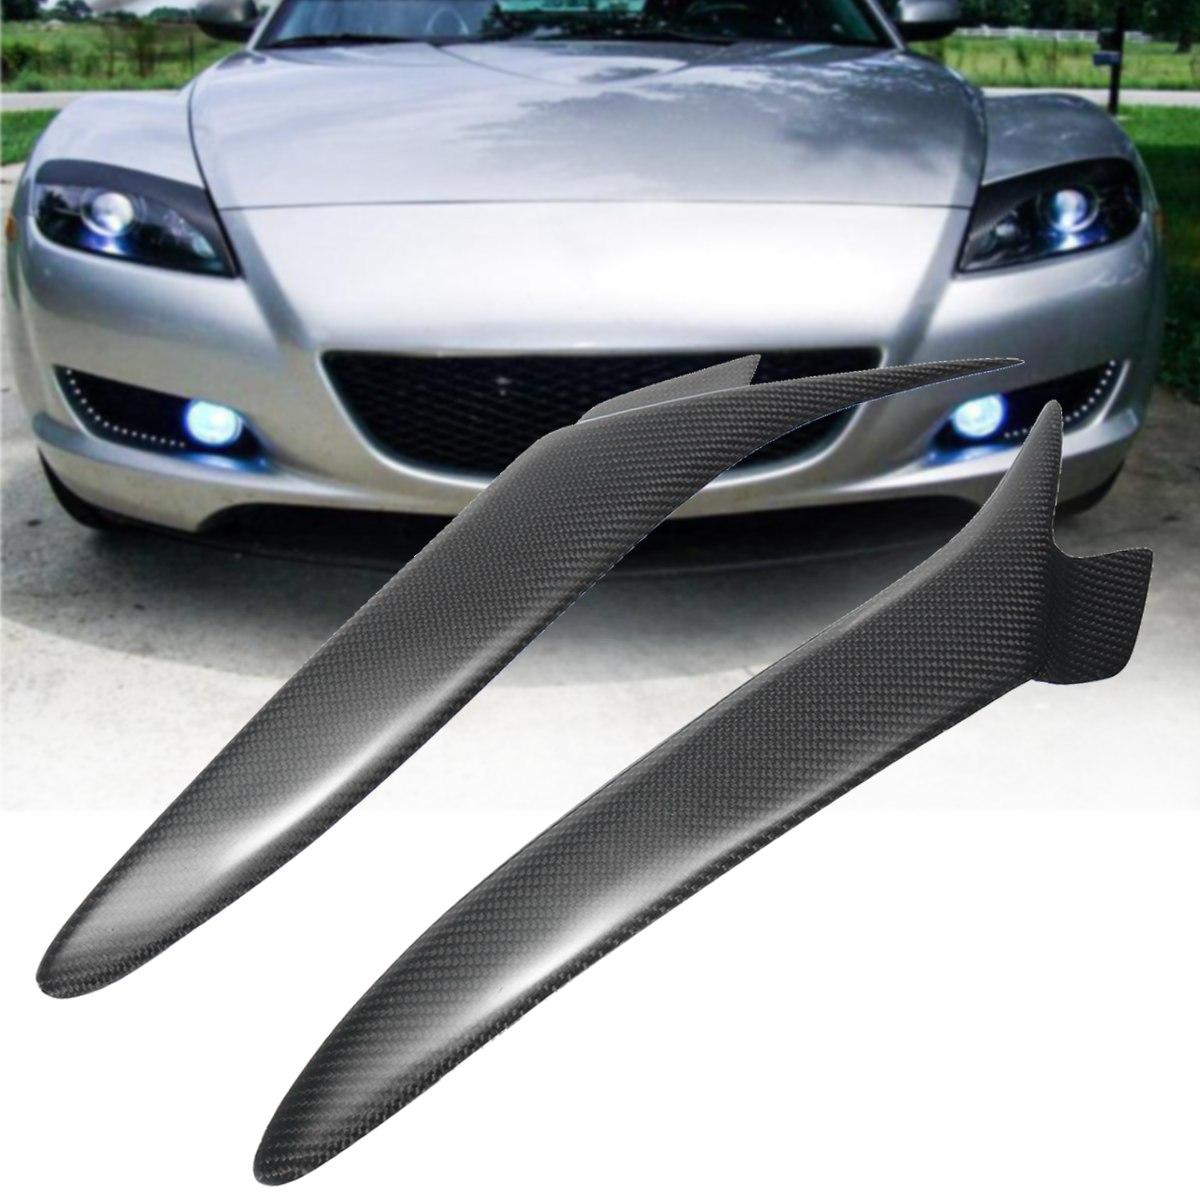 Real Carbon Fiber Headlight Eyebrows Eyelids Cover For Mazda RX 8 RX8 2004 2008 2001 2007 for mitsubishi lancer evolution evo 7 8 9 carbon fiber eyebrows eyelids headlight